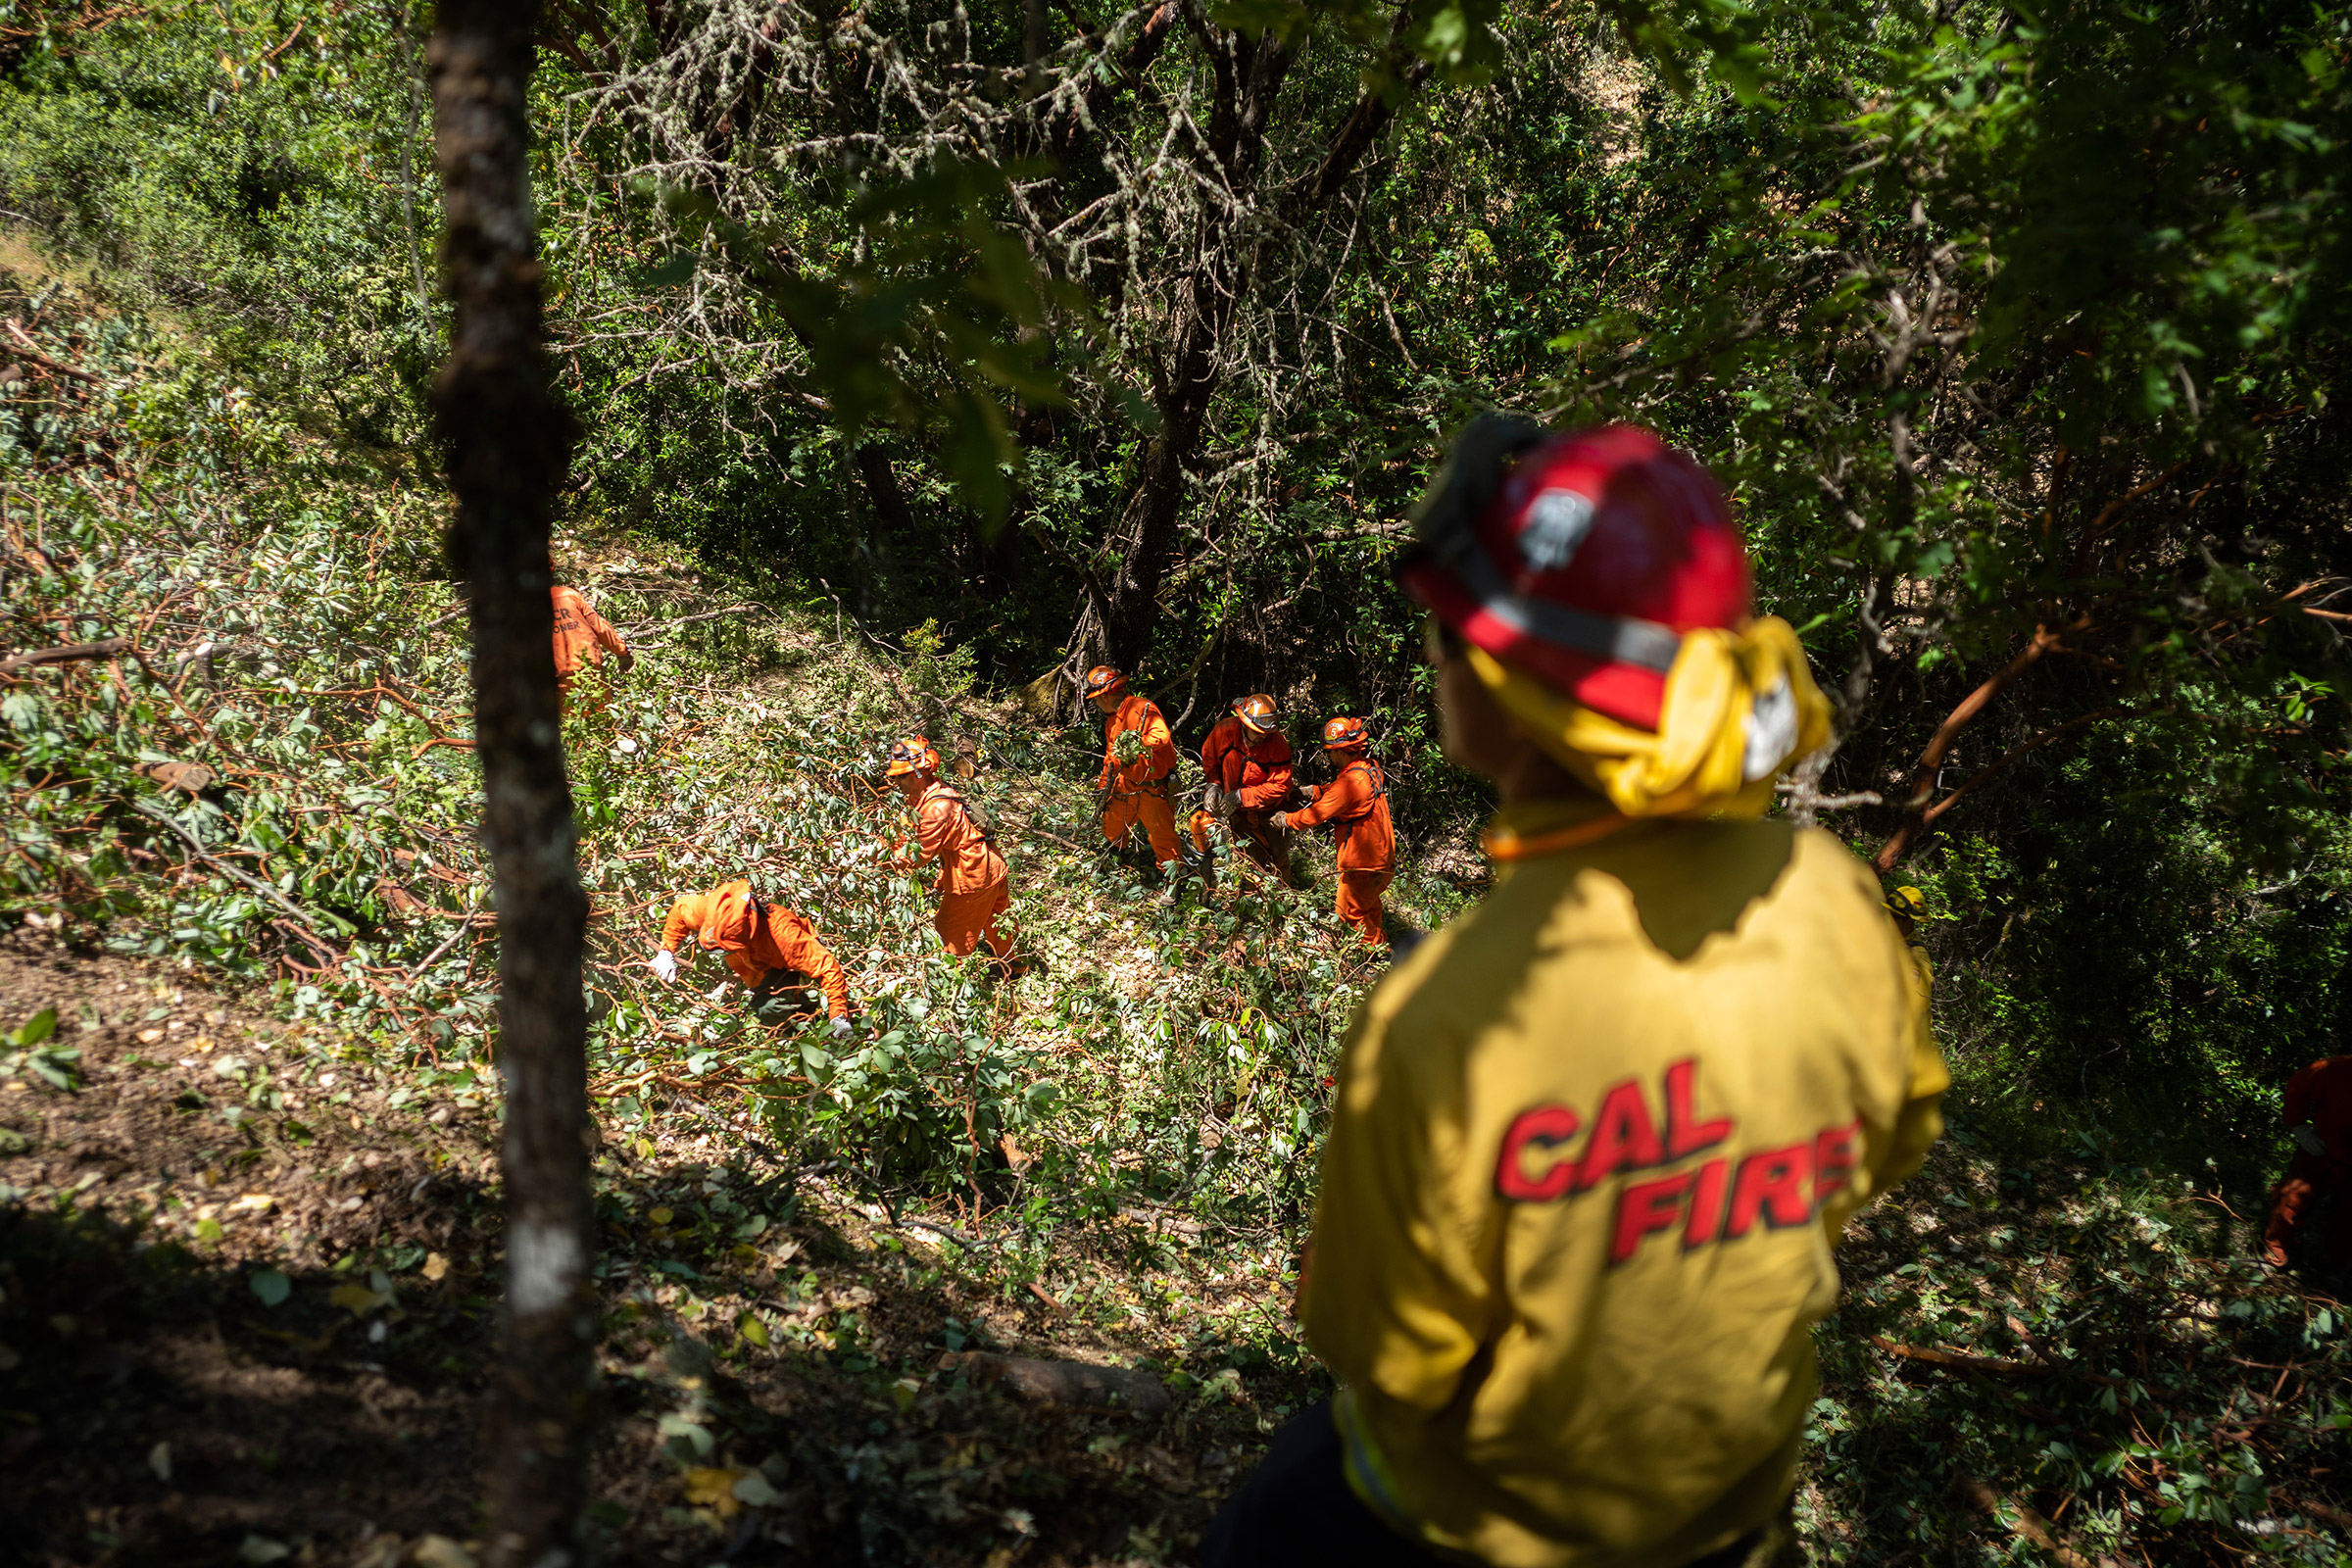 Fire crews cut brush in the hills around Ukiah, Calif., on Wednesday, June 19, 2019.